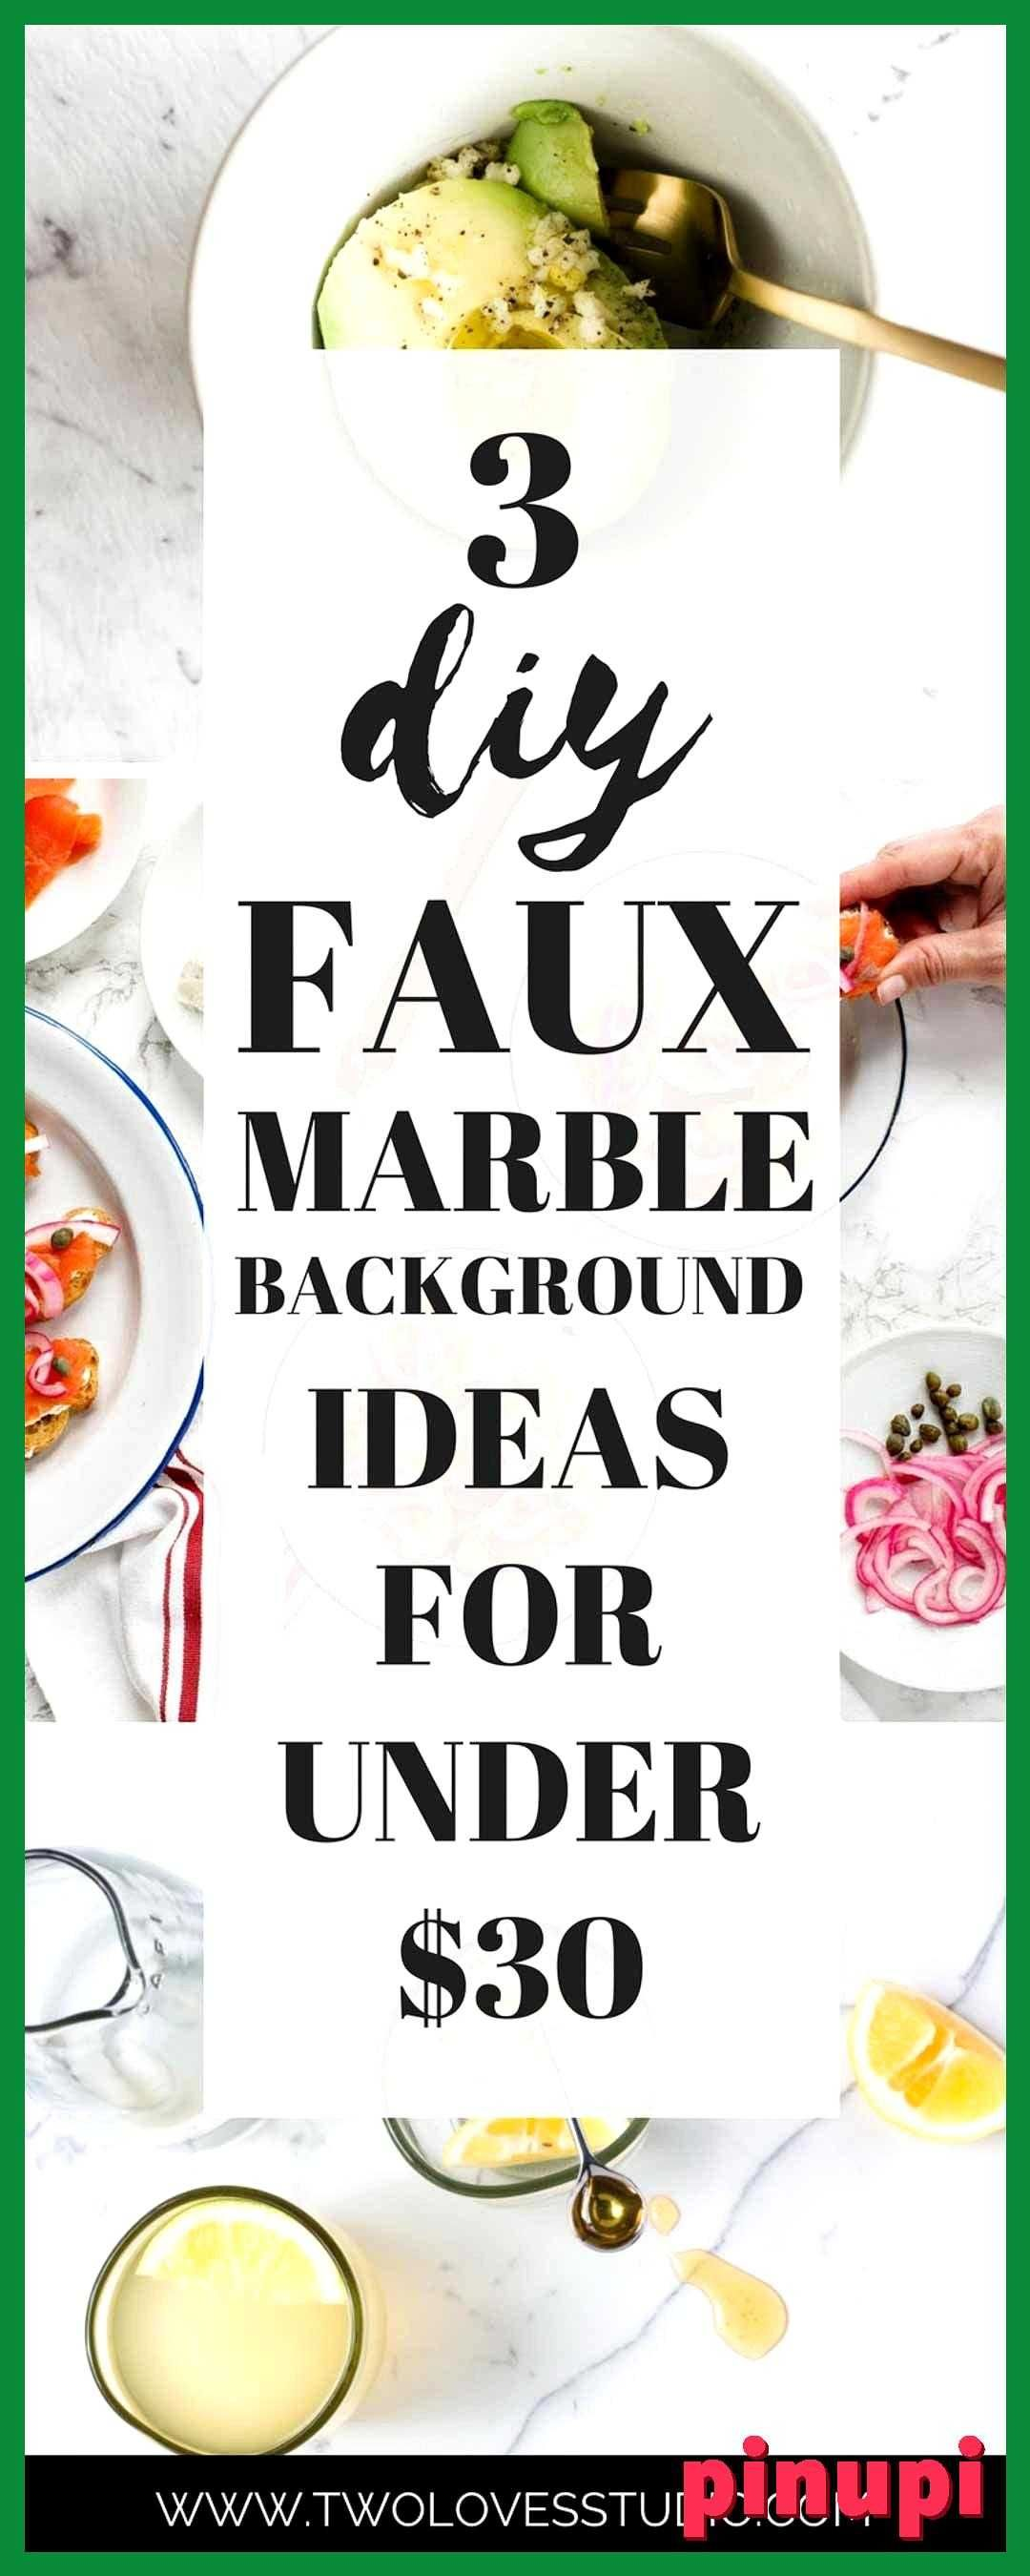 3 Diy Ways To Make Faux Marble Backgrounds For Under 30 3 Diy Ways To Make Faux Marble Backgrounds For Under 30 Three Super Cheap Ideas For Diy Faux Marble Backgrounds Make Those Food Photography Backgrounds Of Your Dreams For A Fraction Of The Price Diy Faux Marble Backgrounds For Food Photography 30 Use These Three Super